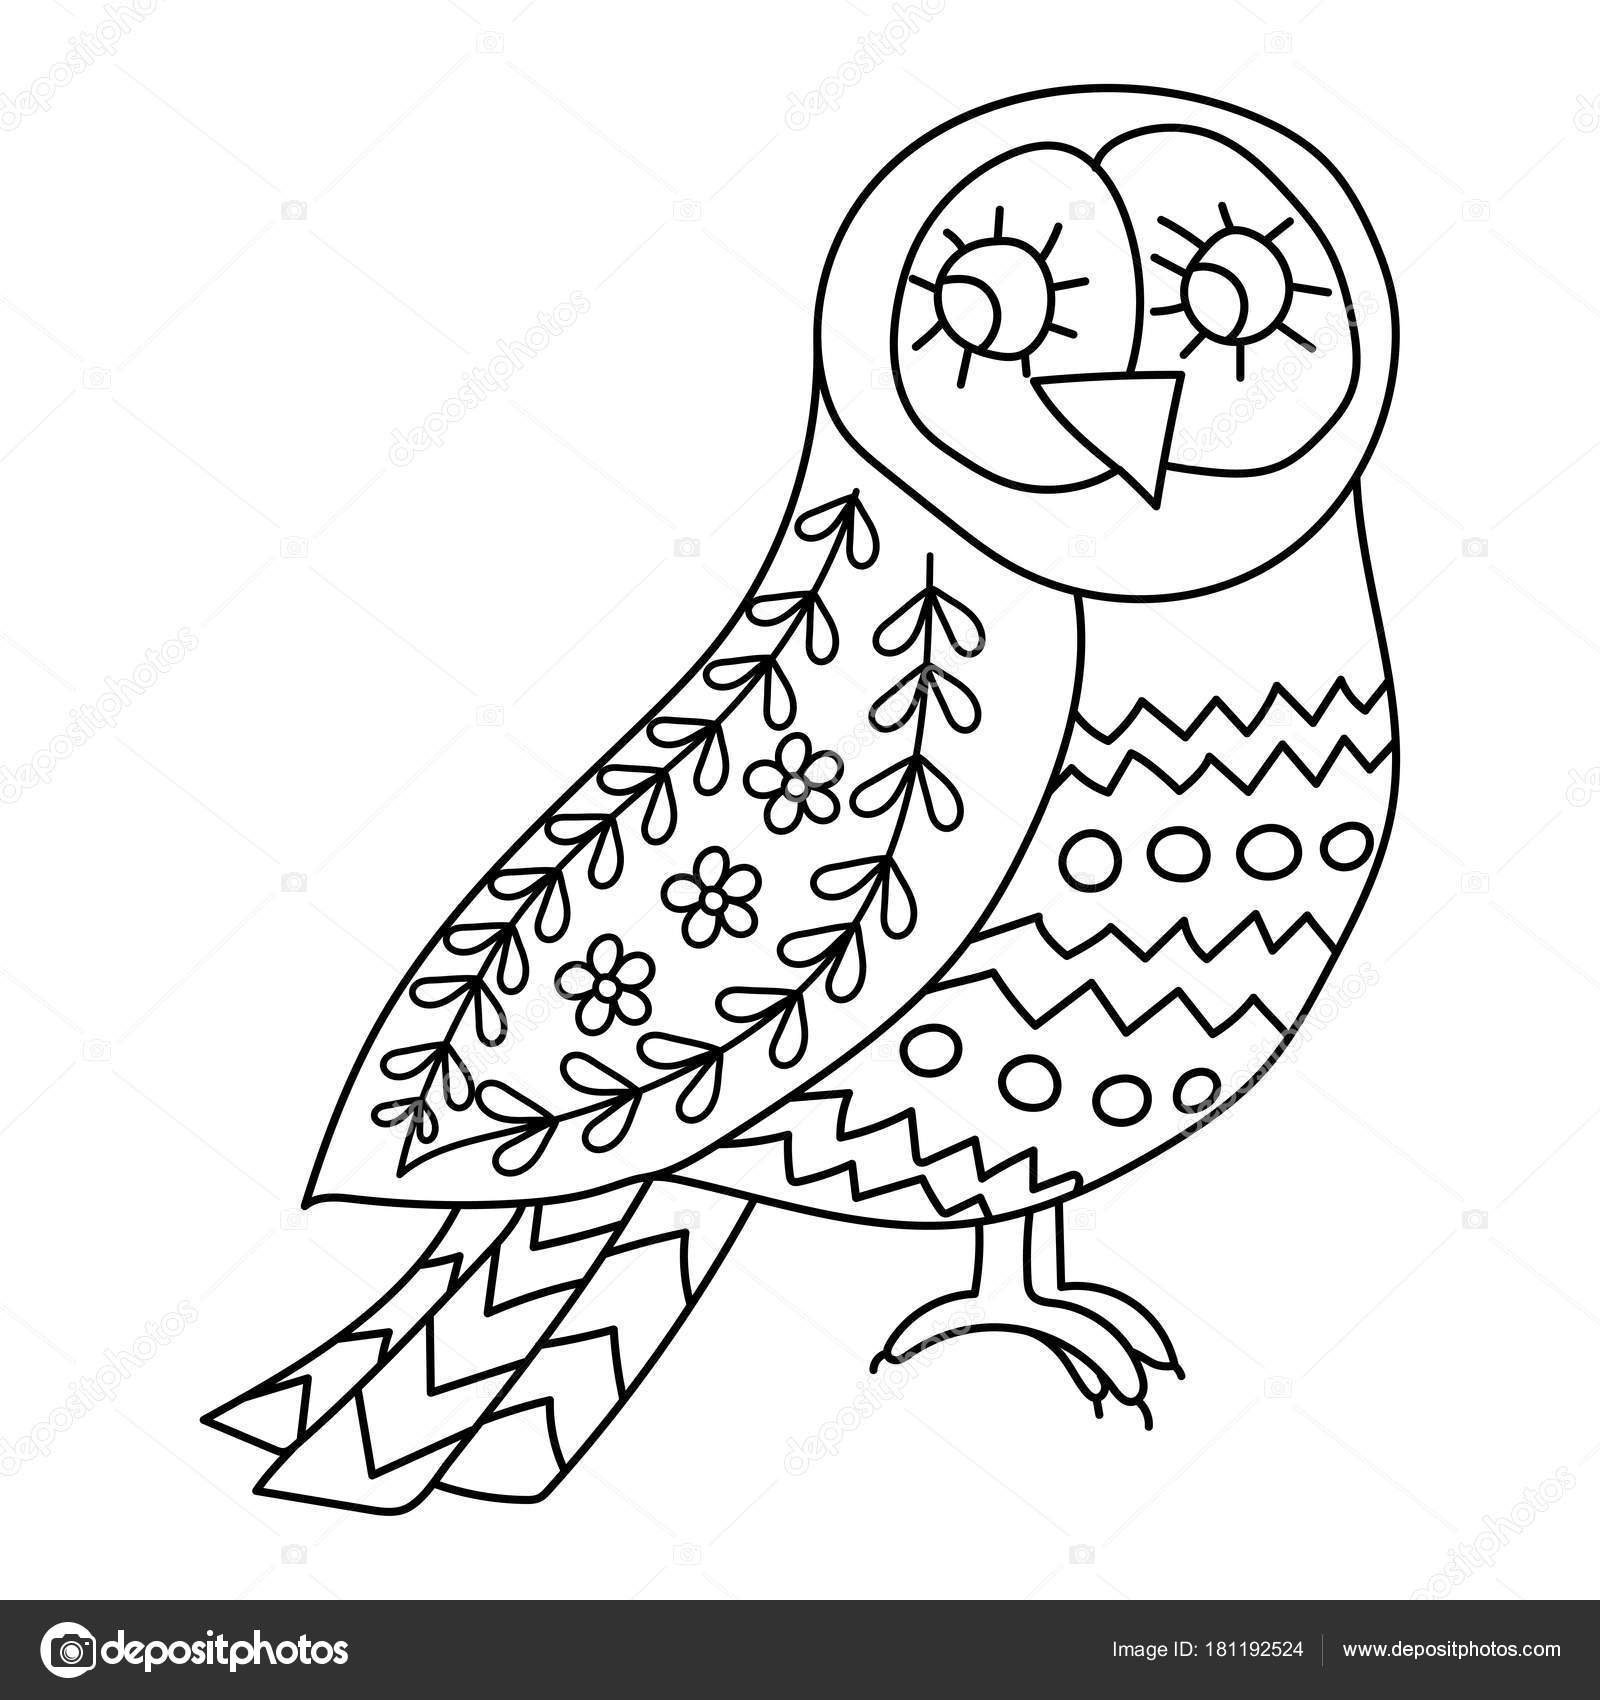 Coloring Book Or Pages For Adults Illustration Birds With Flowers